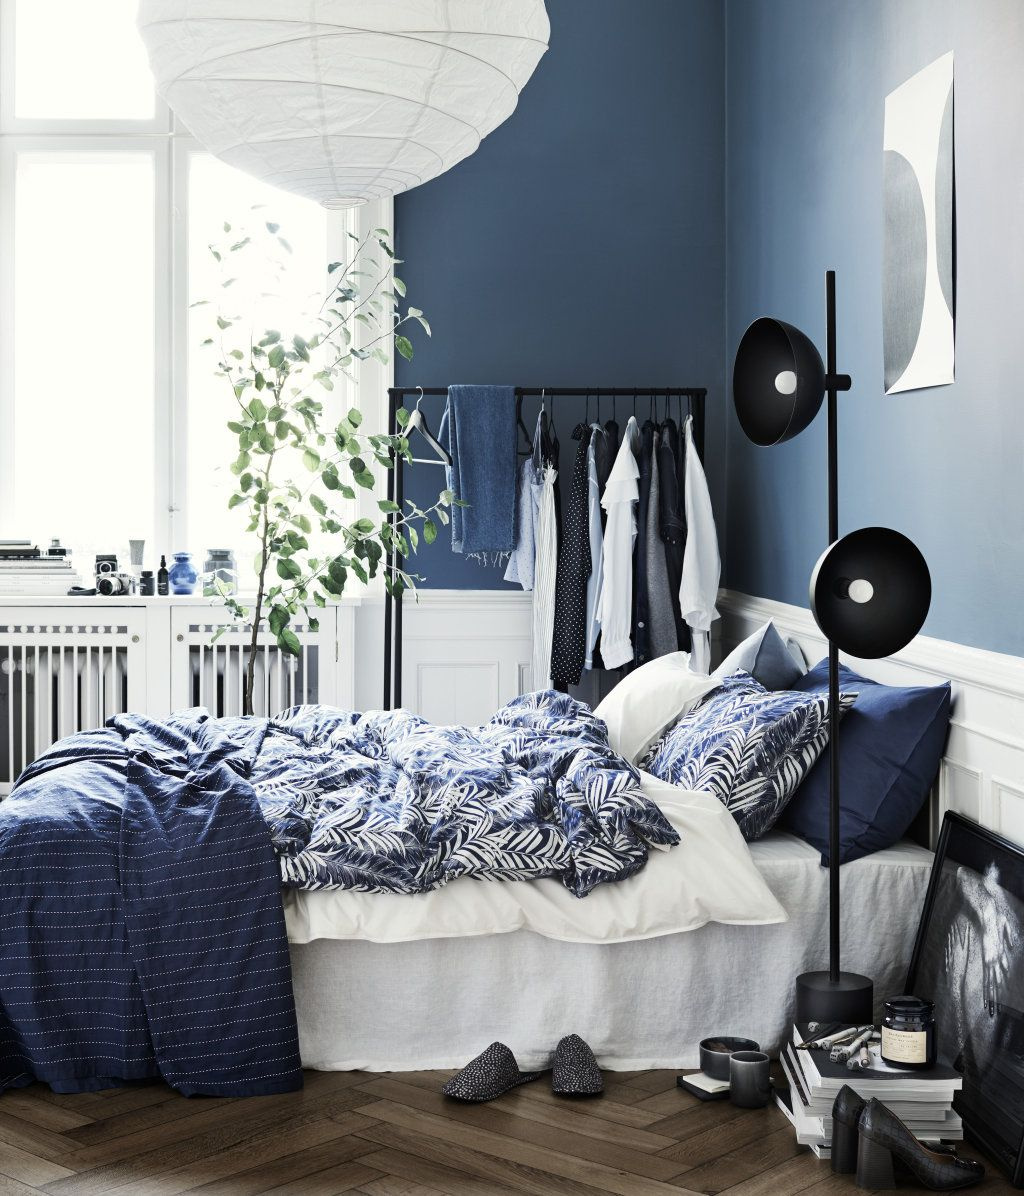 kopfkissenbezug dunkelblau home h m de decoration. Black Bedroom Furniture Sets. Home Design Ideas